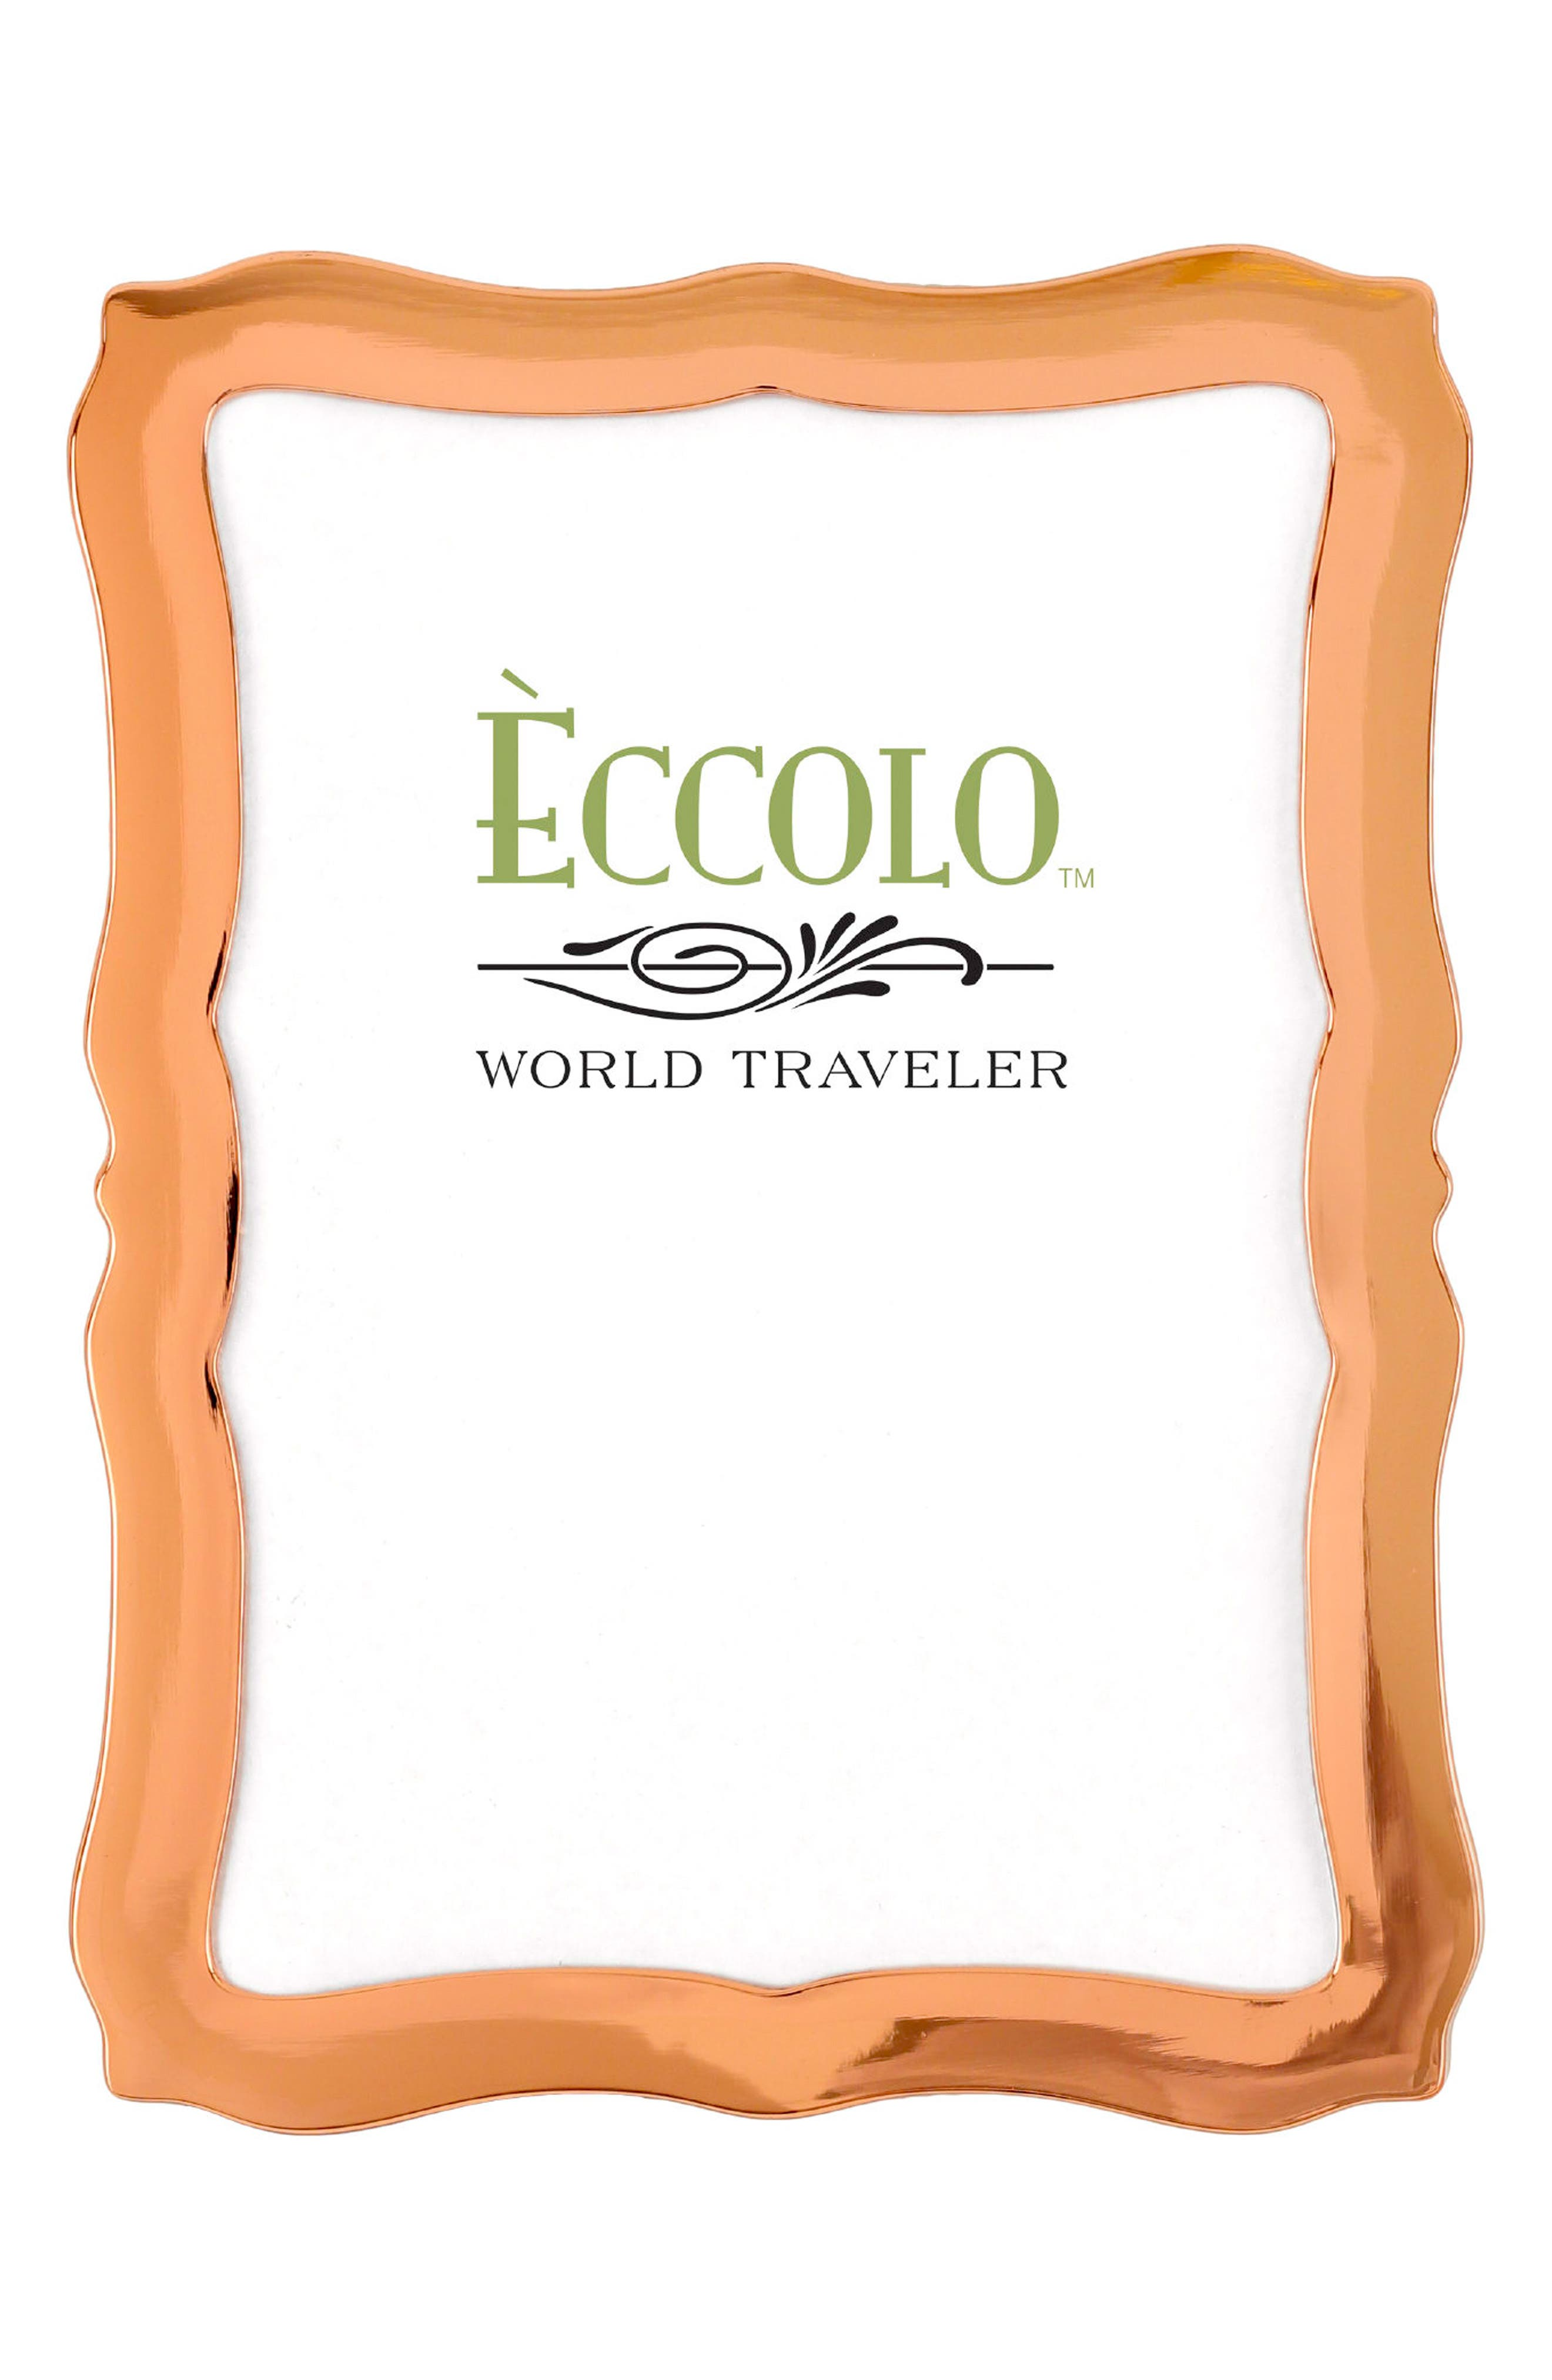 Scalloped Copper Picture Frame,                             Main thumbnail 1, color,                             220